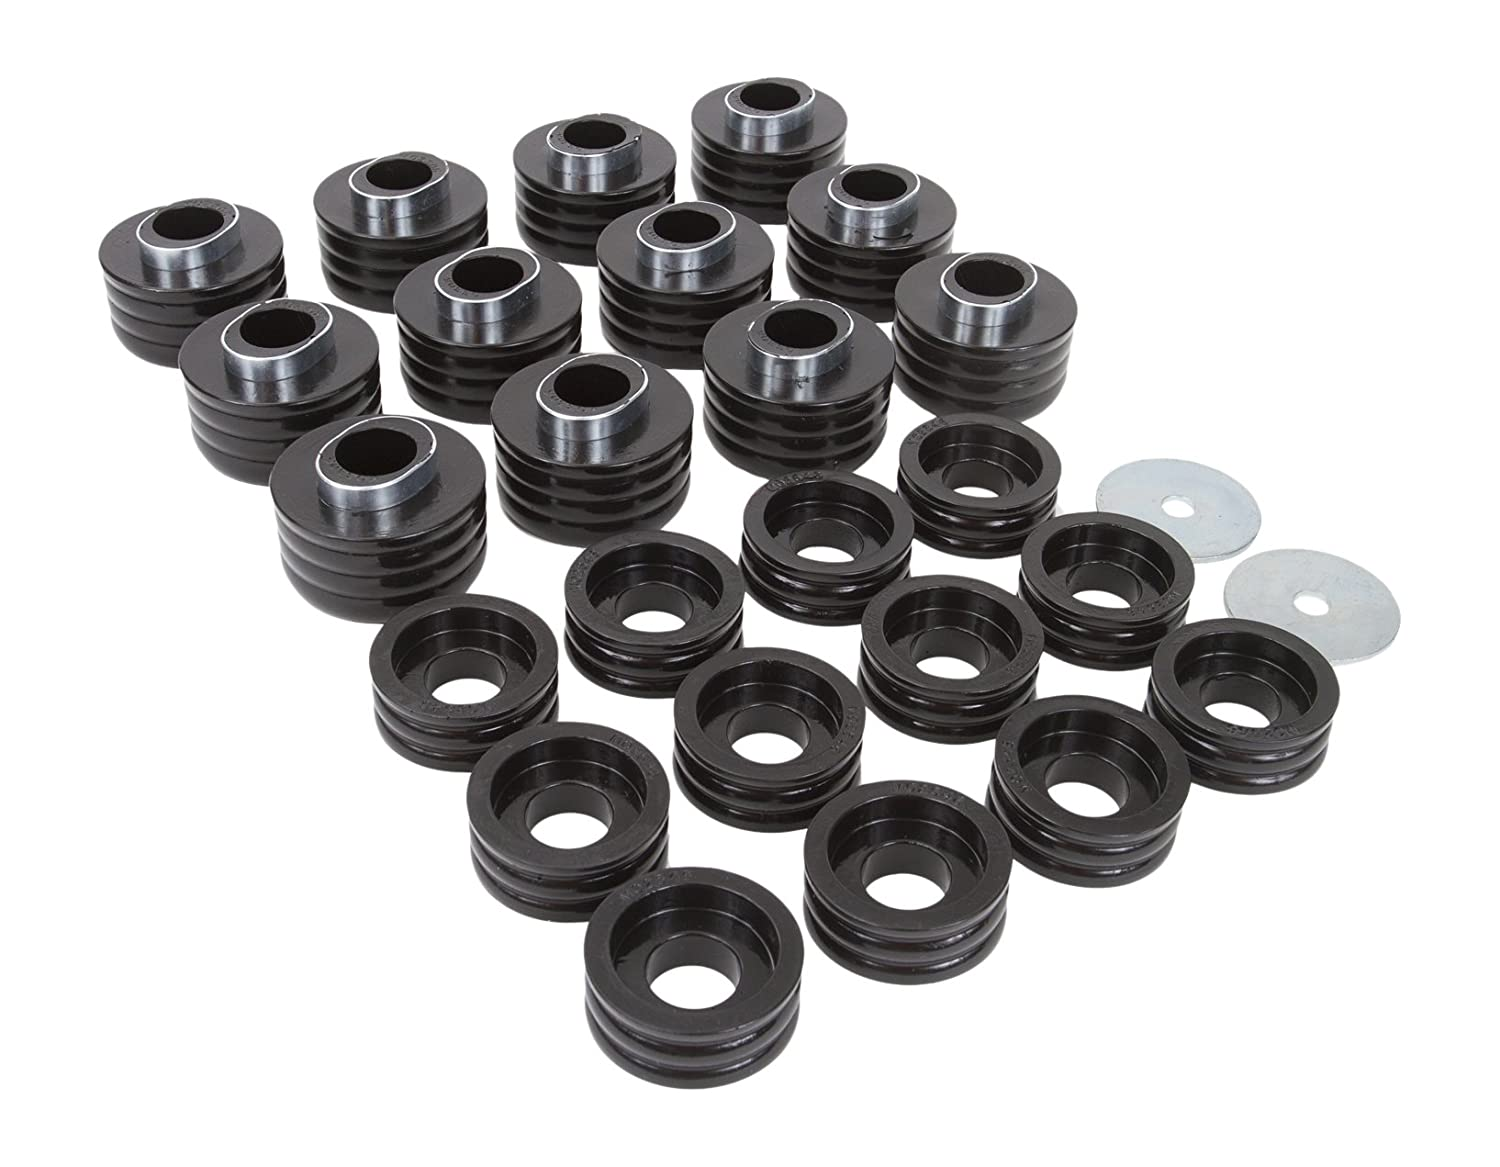 Daystar, Ford Excursion Polyurethane Body Mounts, fits 1999 to 2005 2/4WD, KF04051BK, Made in America